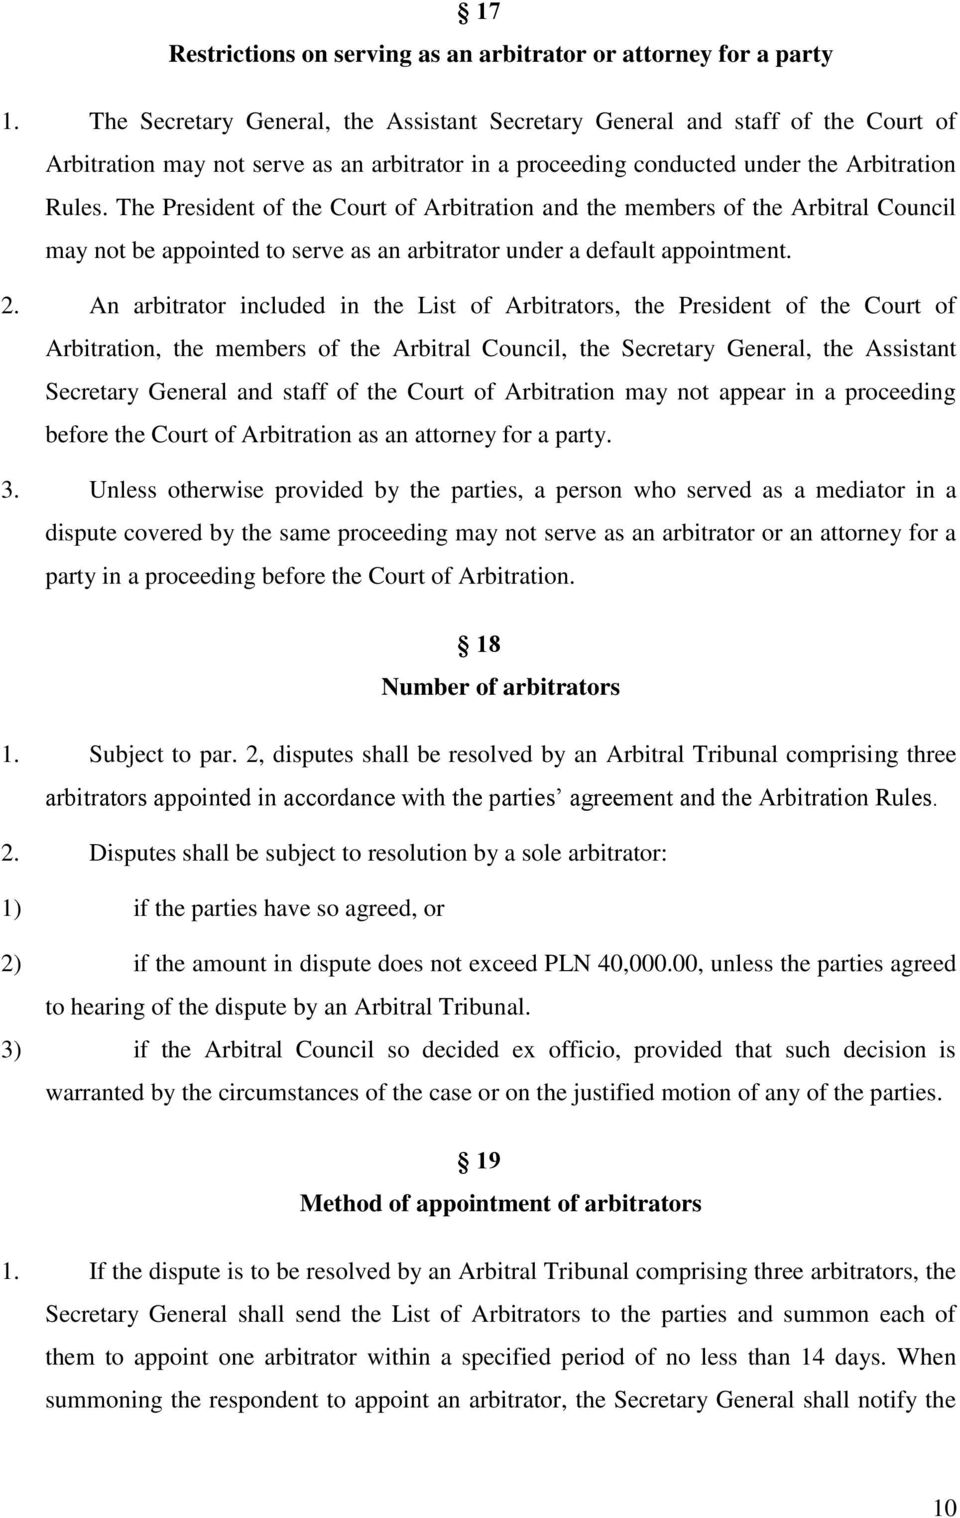 The President of the Court of Arbitration and the members of the Arbitral Council may not be appointed to serve as an arbitrator under a default appointment. 2.